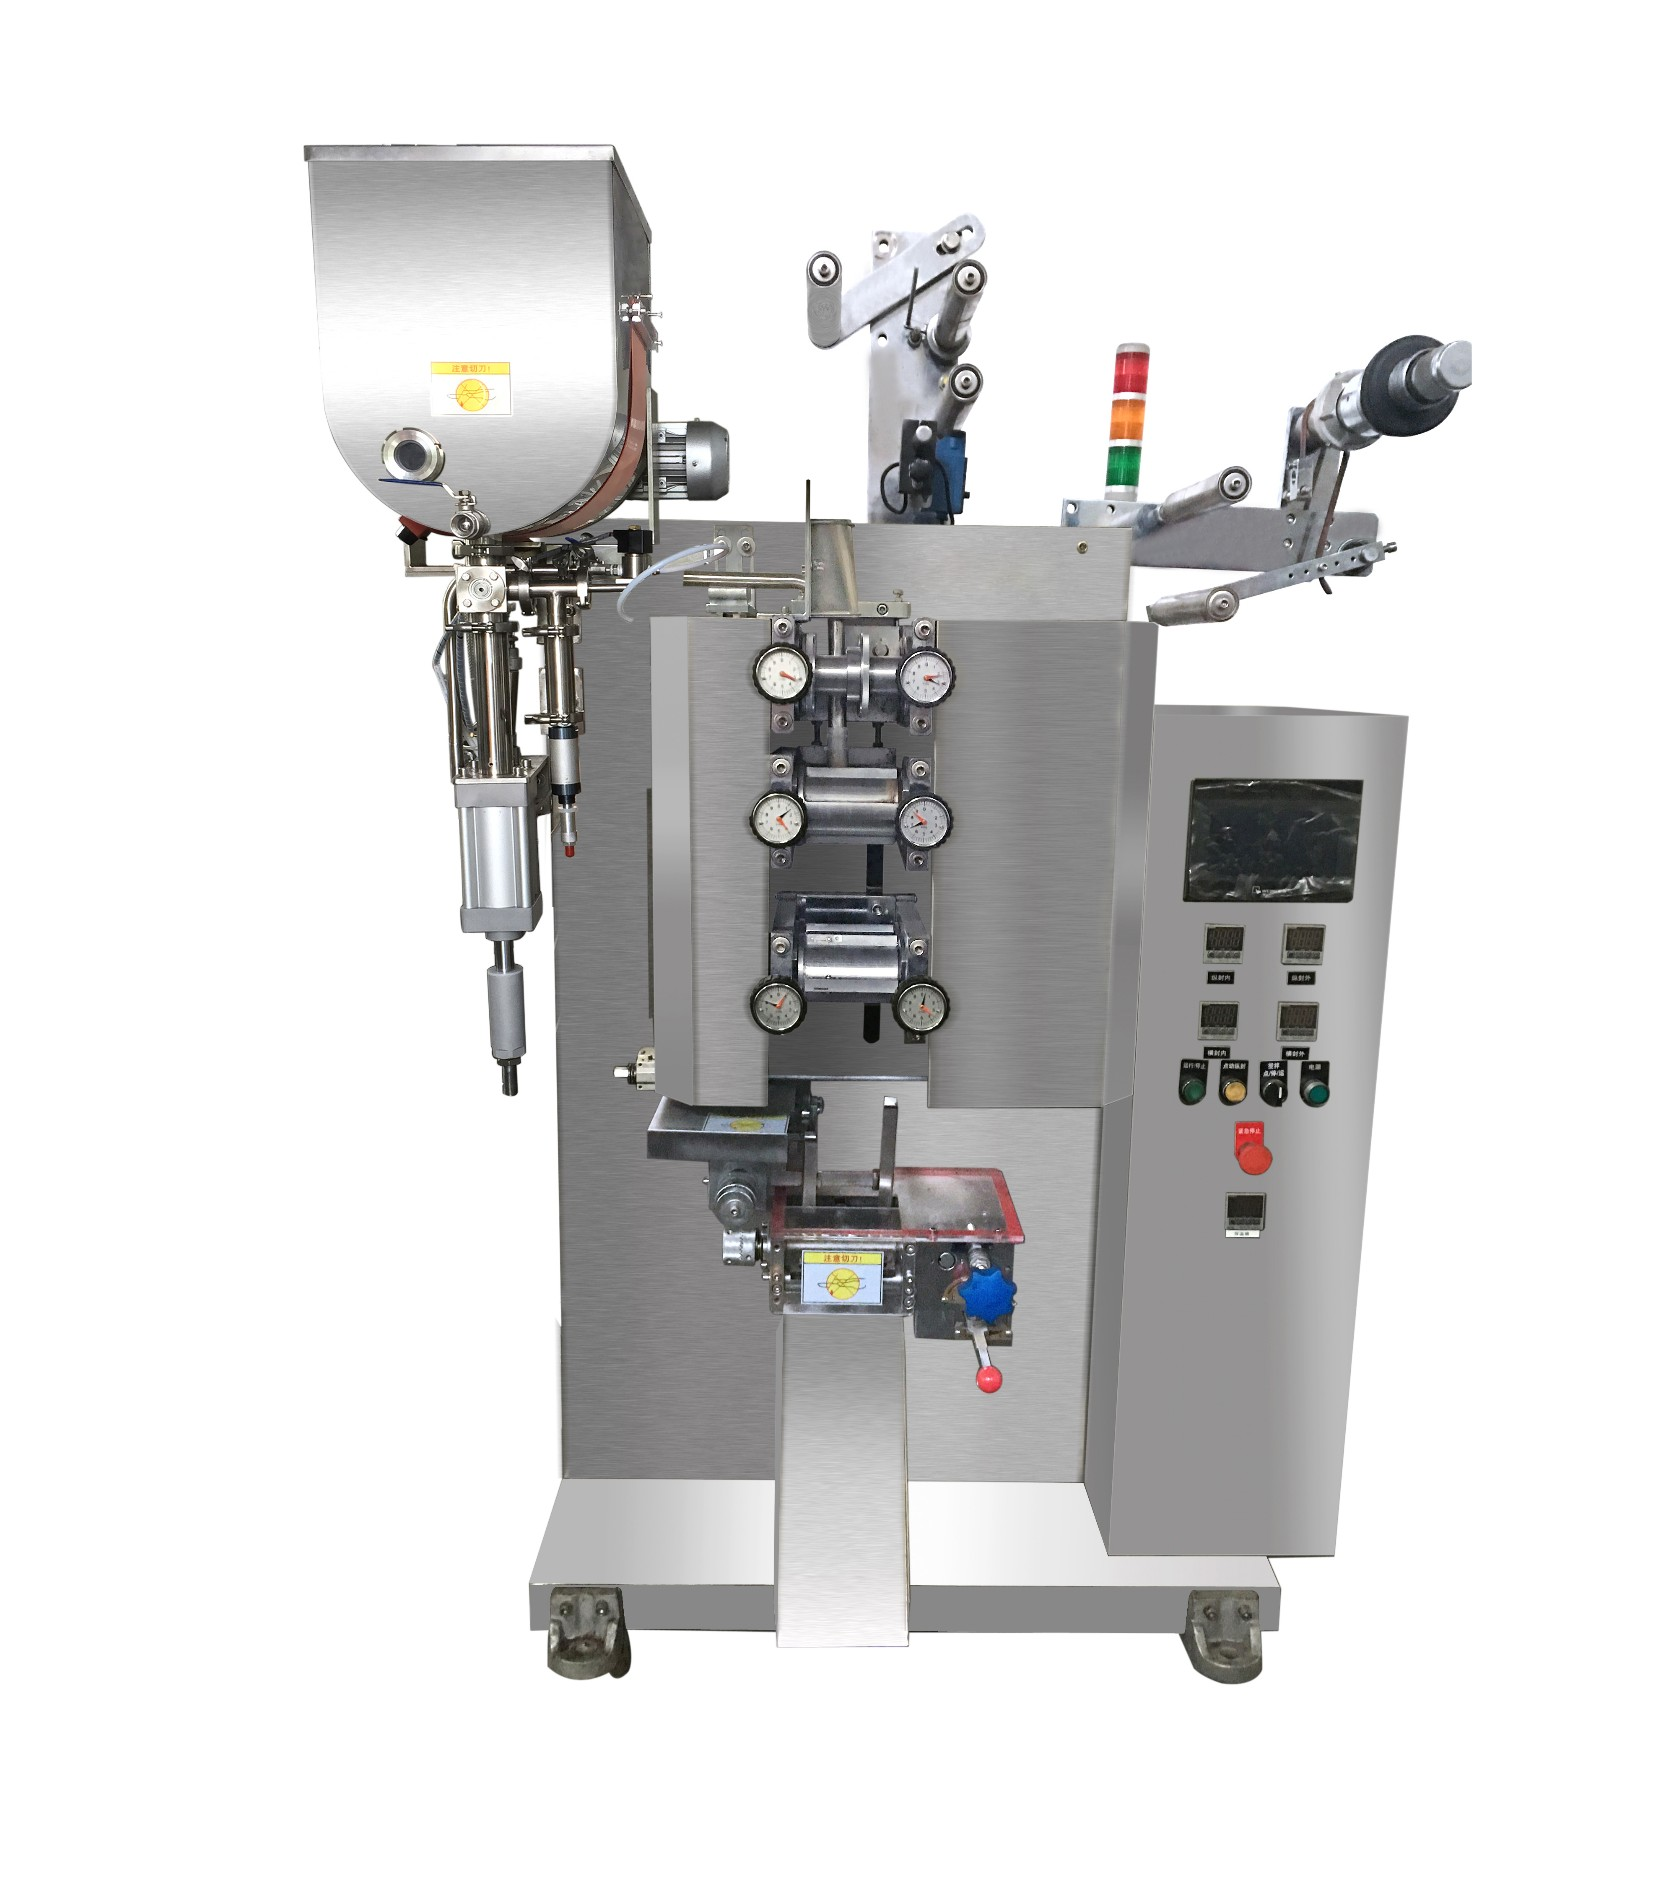 Operate Simple Cream Or Essence Milk Packaging Machine Manufacturers, Operate Simple Cream Or Essence Milk Packaging Machine Factory, Supply Operate Simple Cream Or Essence Milk Packaging Machine